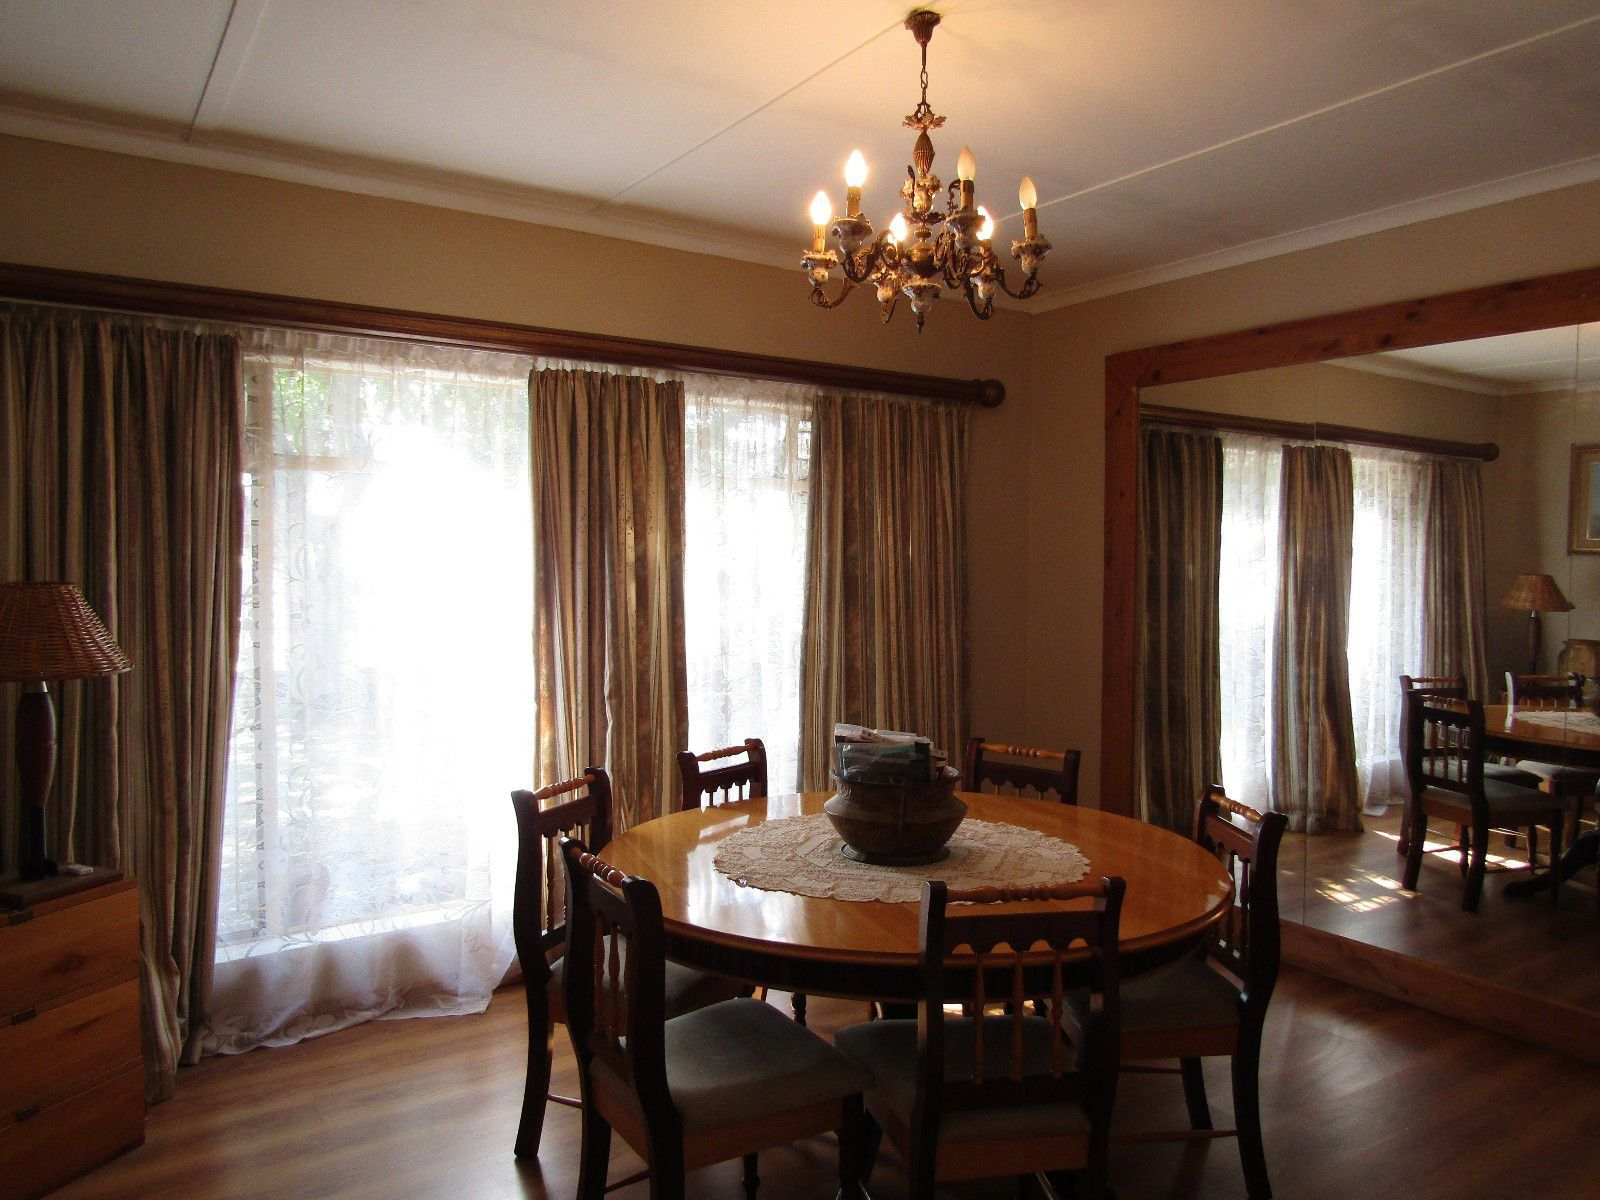 Potchefstroom Central property for sale. Ref No: 13444543. Picture no 9